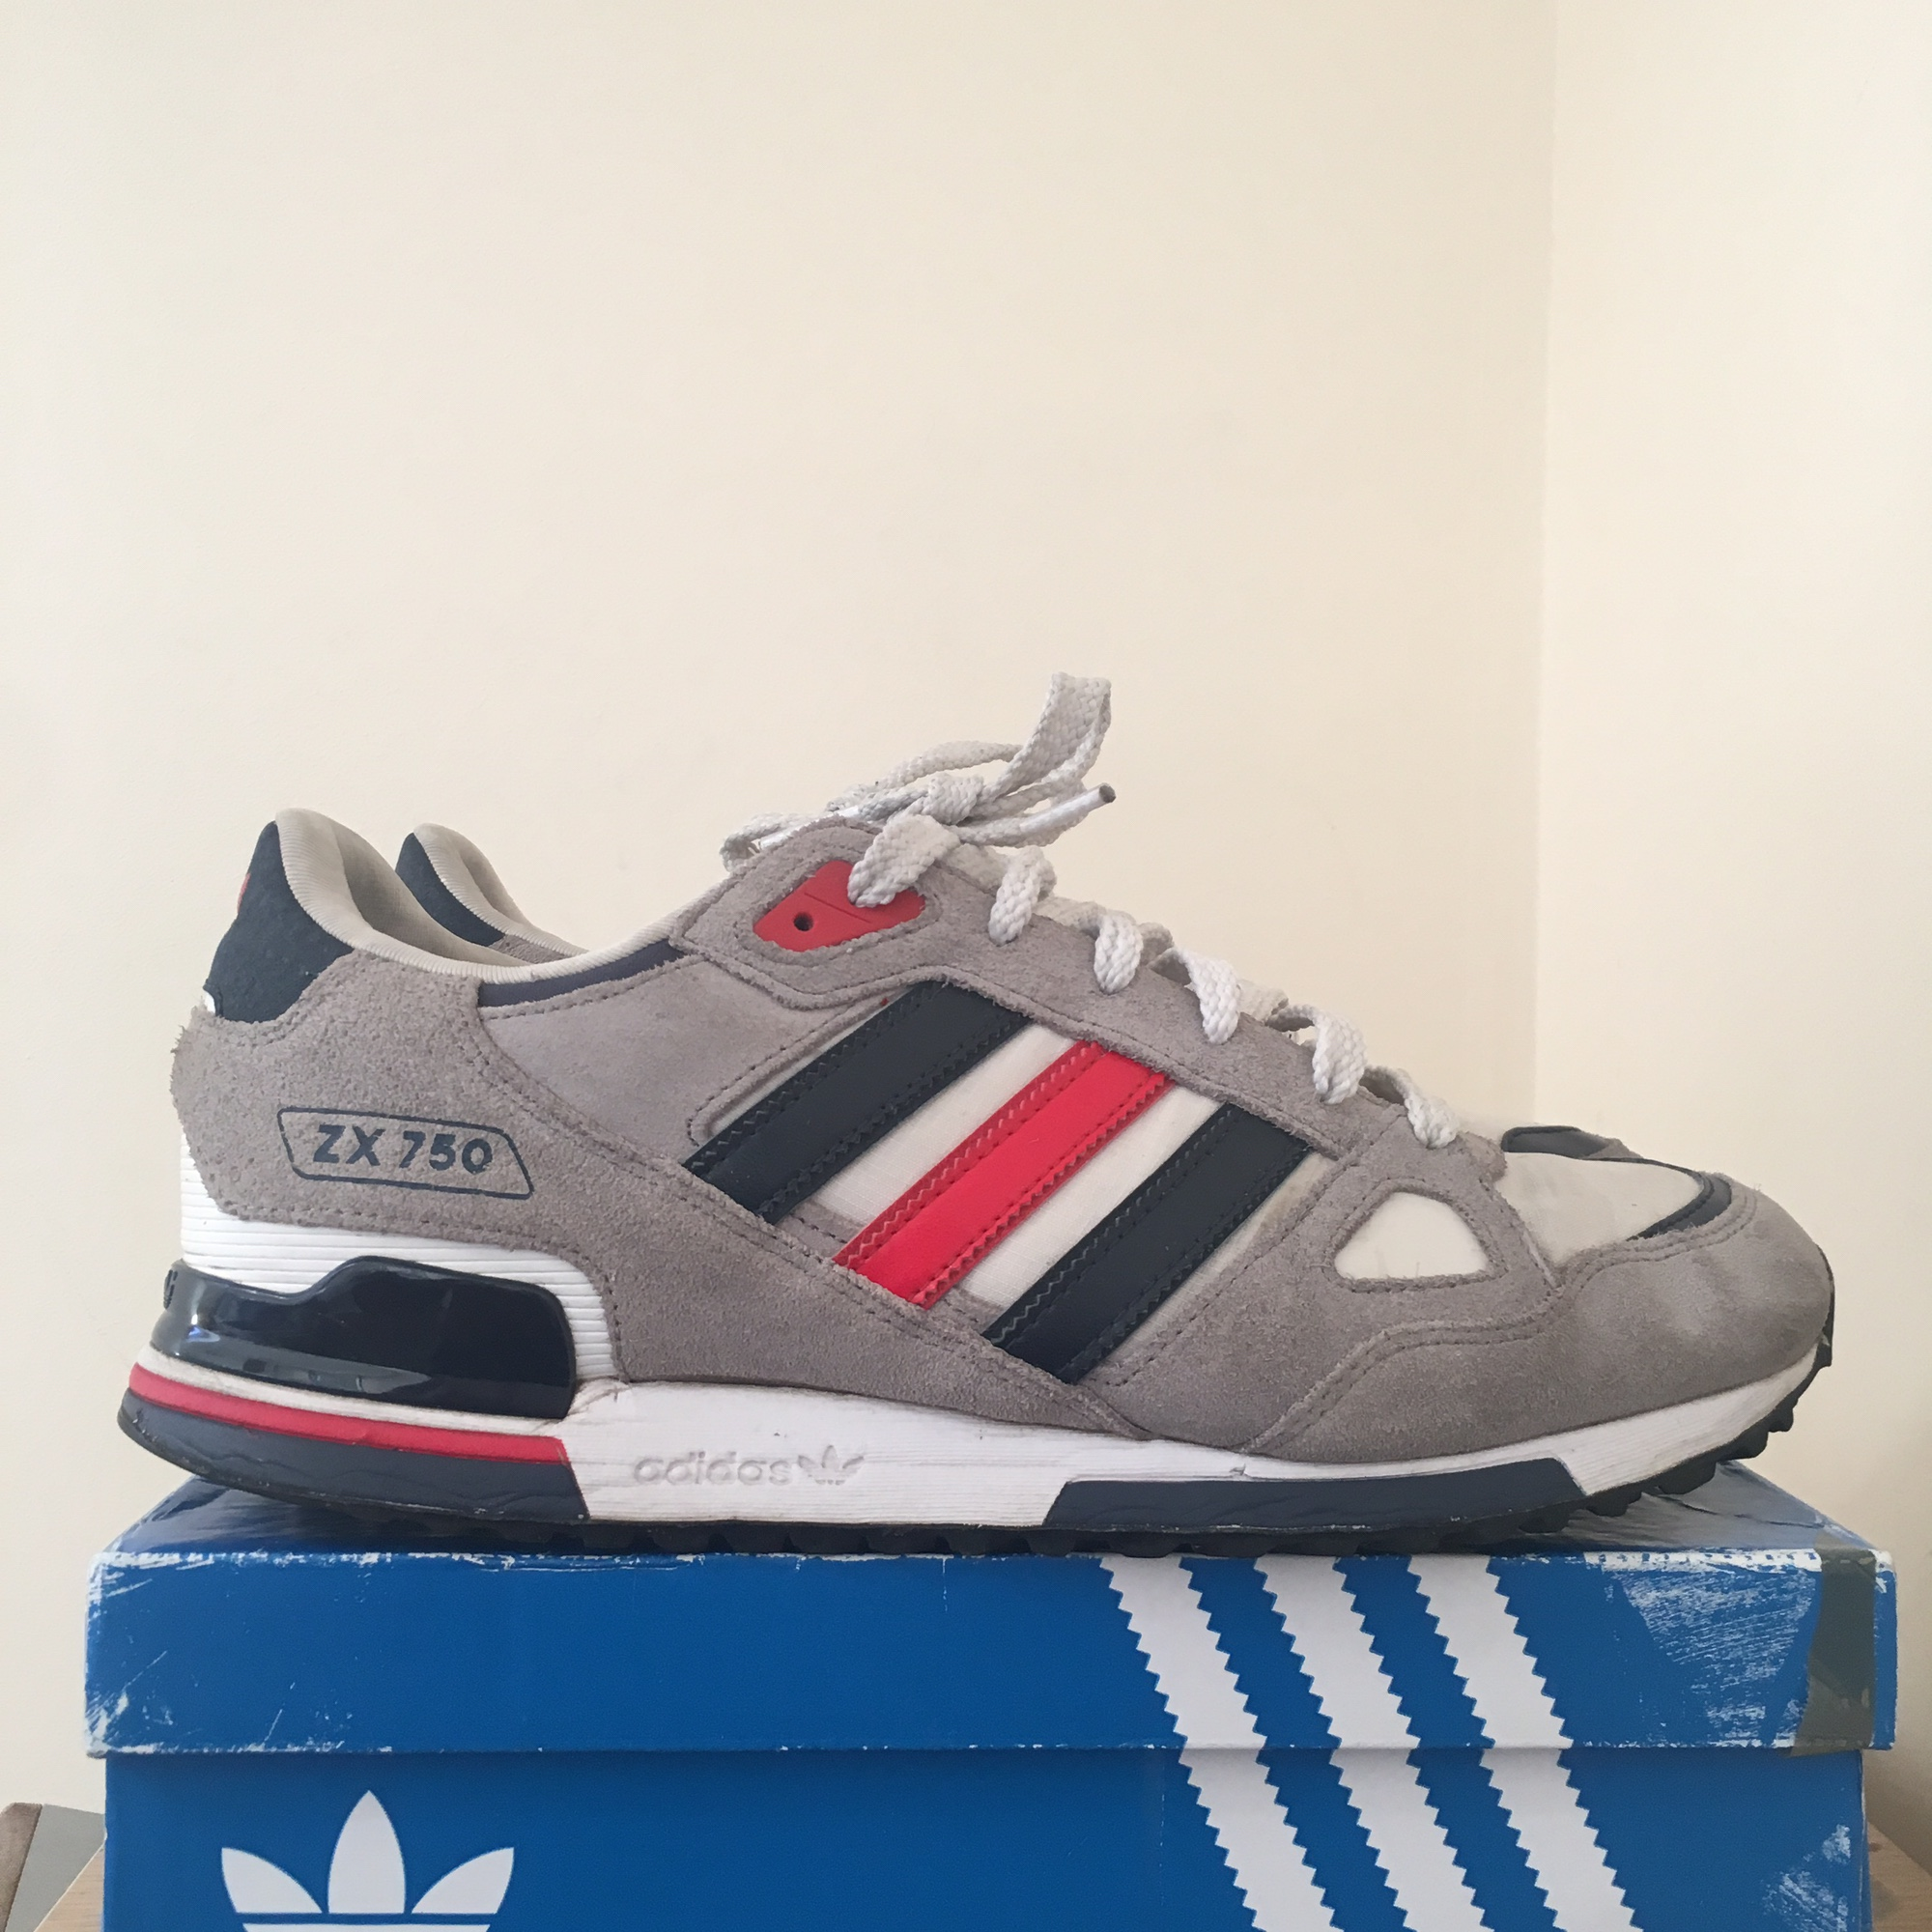 détaillant en ligne c35a7 2c31a Adidas Zx750 Trainers. Nice white red and blue... - Depop